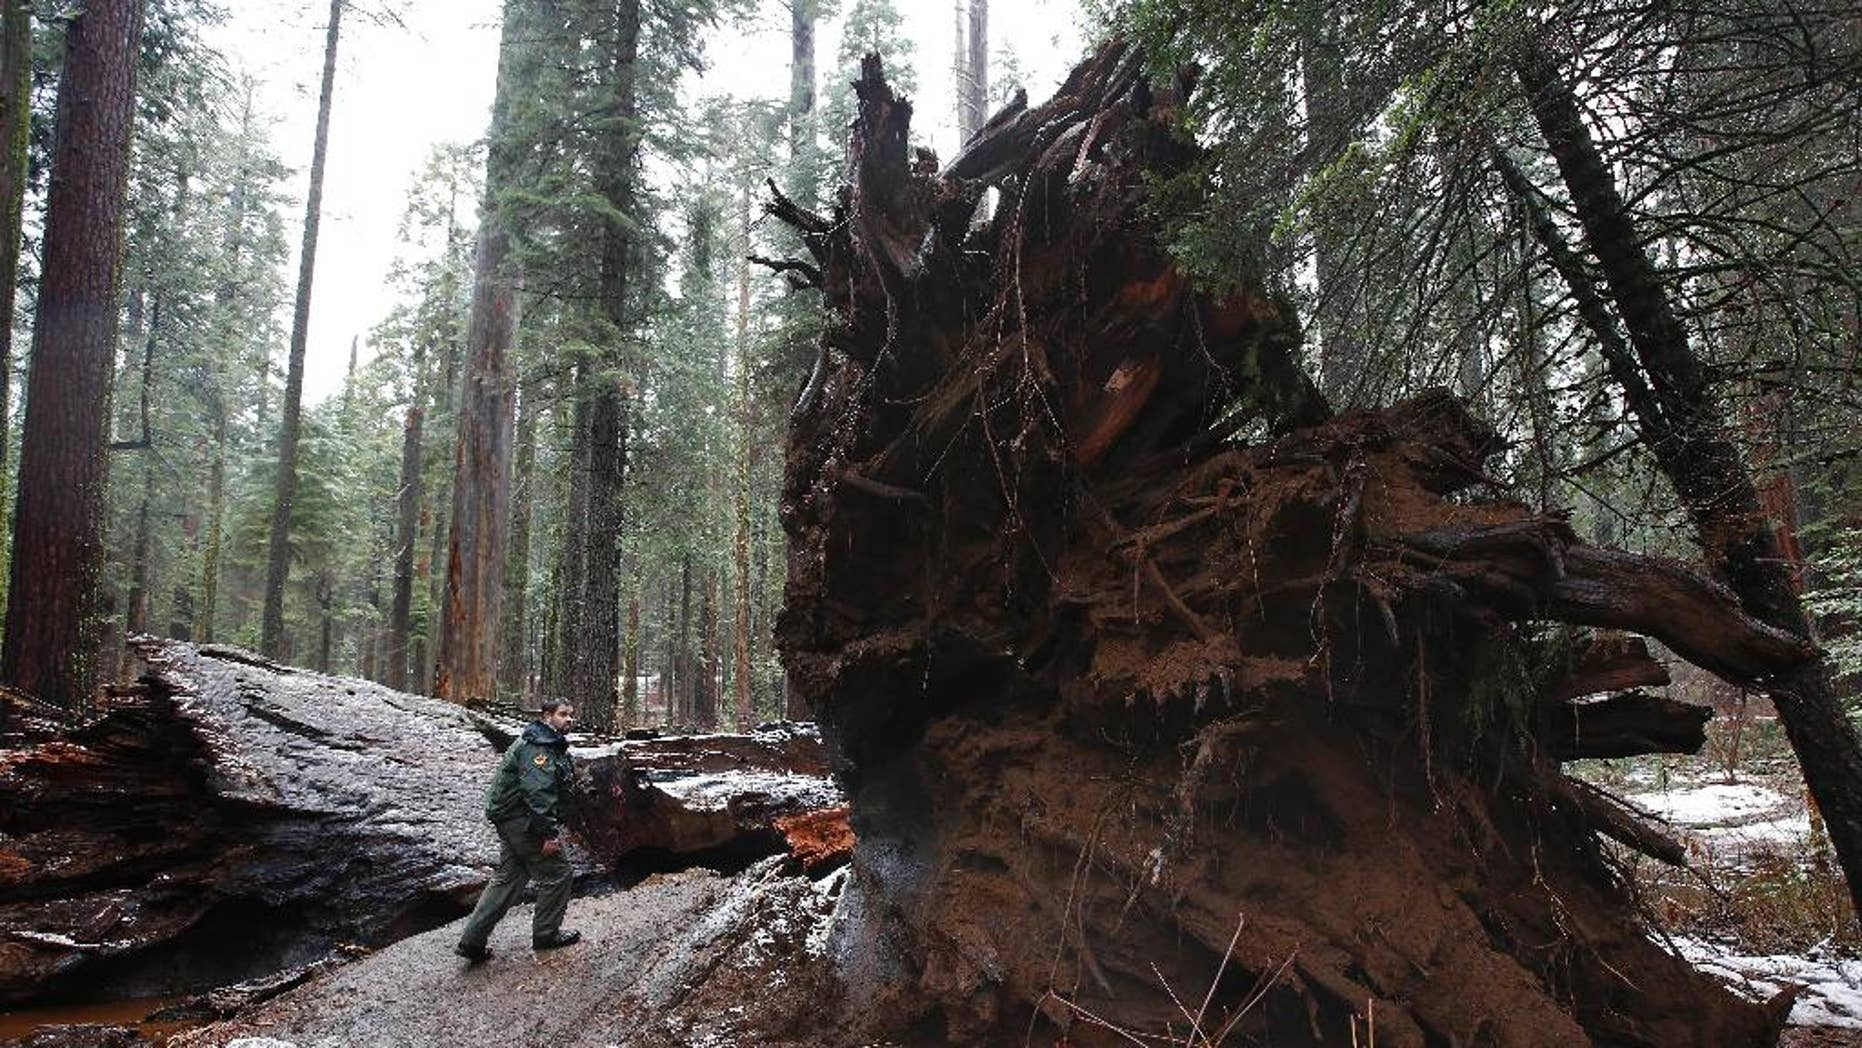 """California State Parks Supervising Ranger Tony Tealdi walks to the fallen Pioneer Cabin Tree at Calaveras Big Trees State Park, Monday, Jan. 9, 2017, in Arnold, Calif. Famous for a """"drive-thru"""" hole carved into its trunk, the giant sequoia was toppled over by a massive storm Sunday. (AP Photo/Rich Pedroncelli)"""